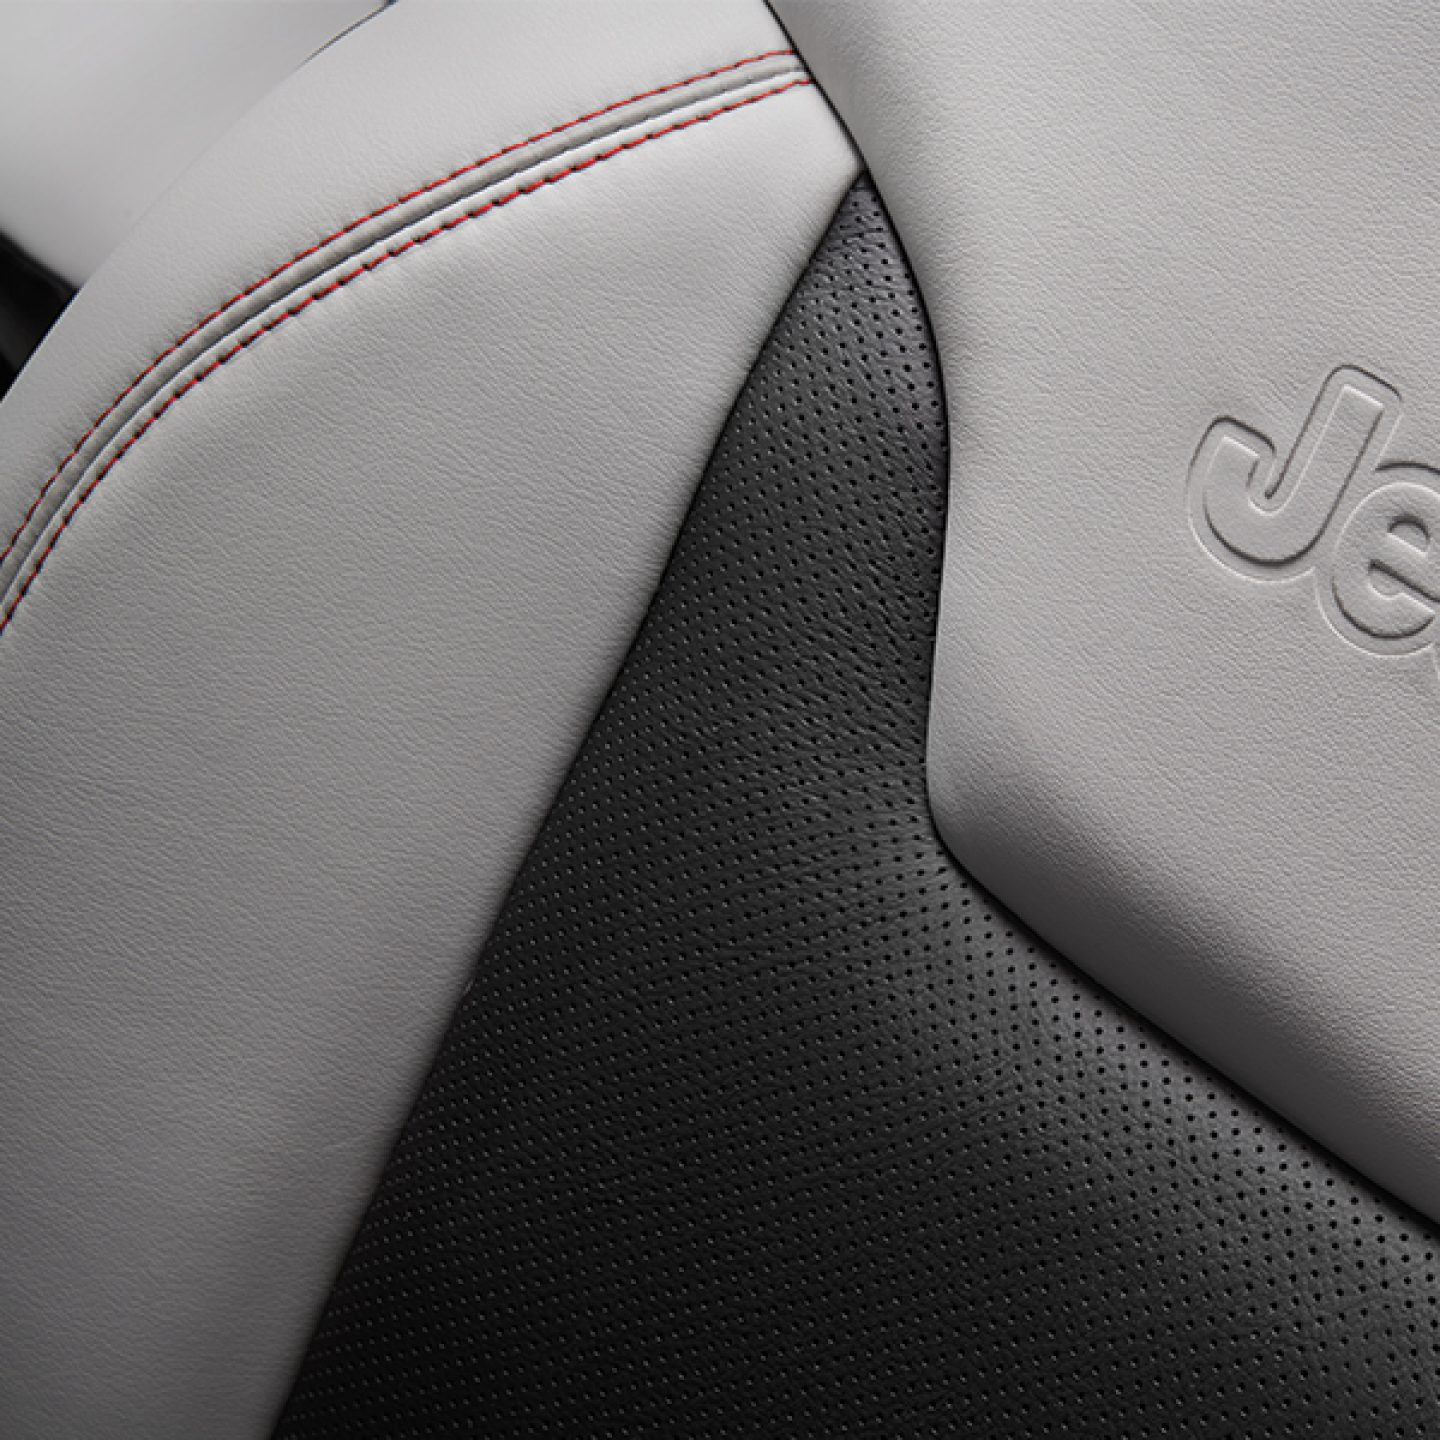 Leather-Trimmed Seats with Perforated Inserts